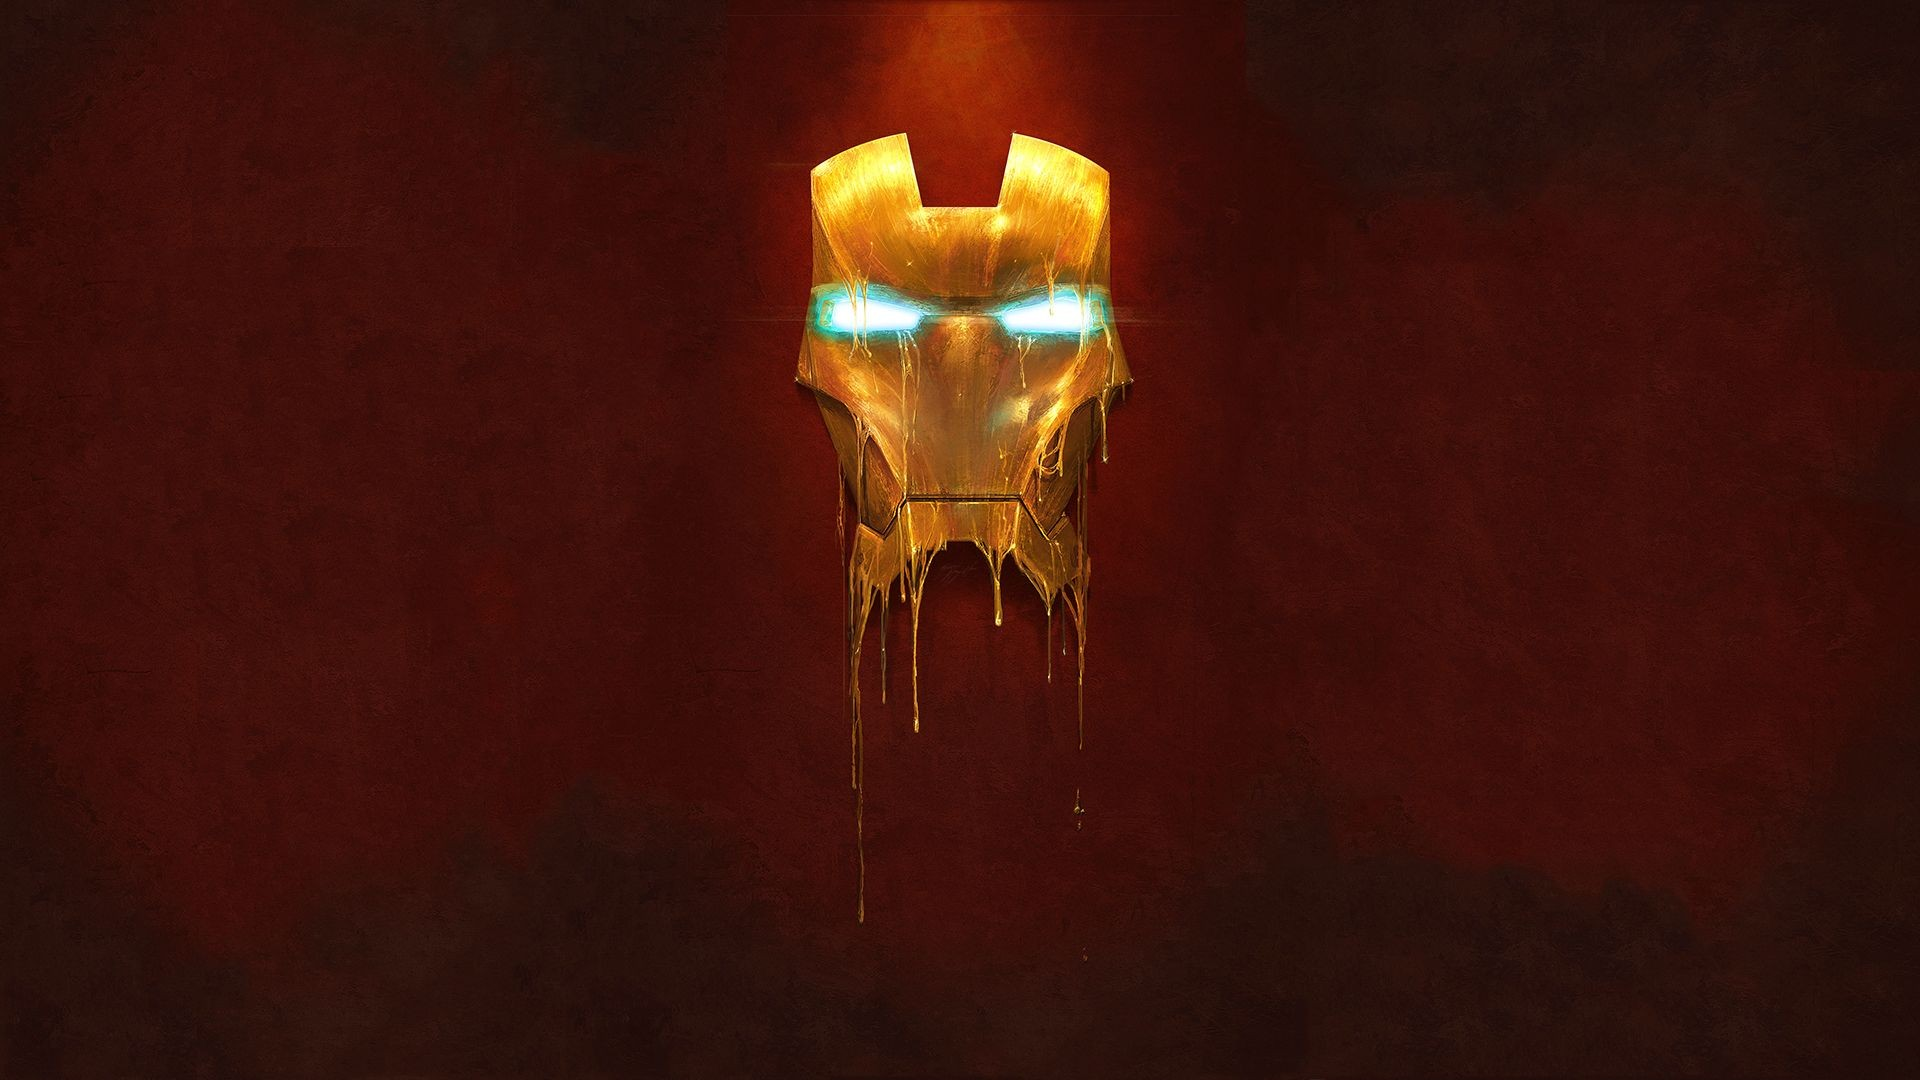 Iron Man Colored Wallpaper Images amp Pictures   Becuo 1920x1080